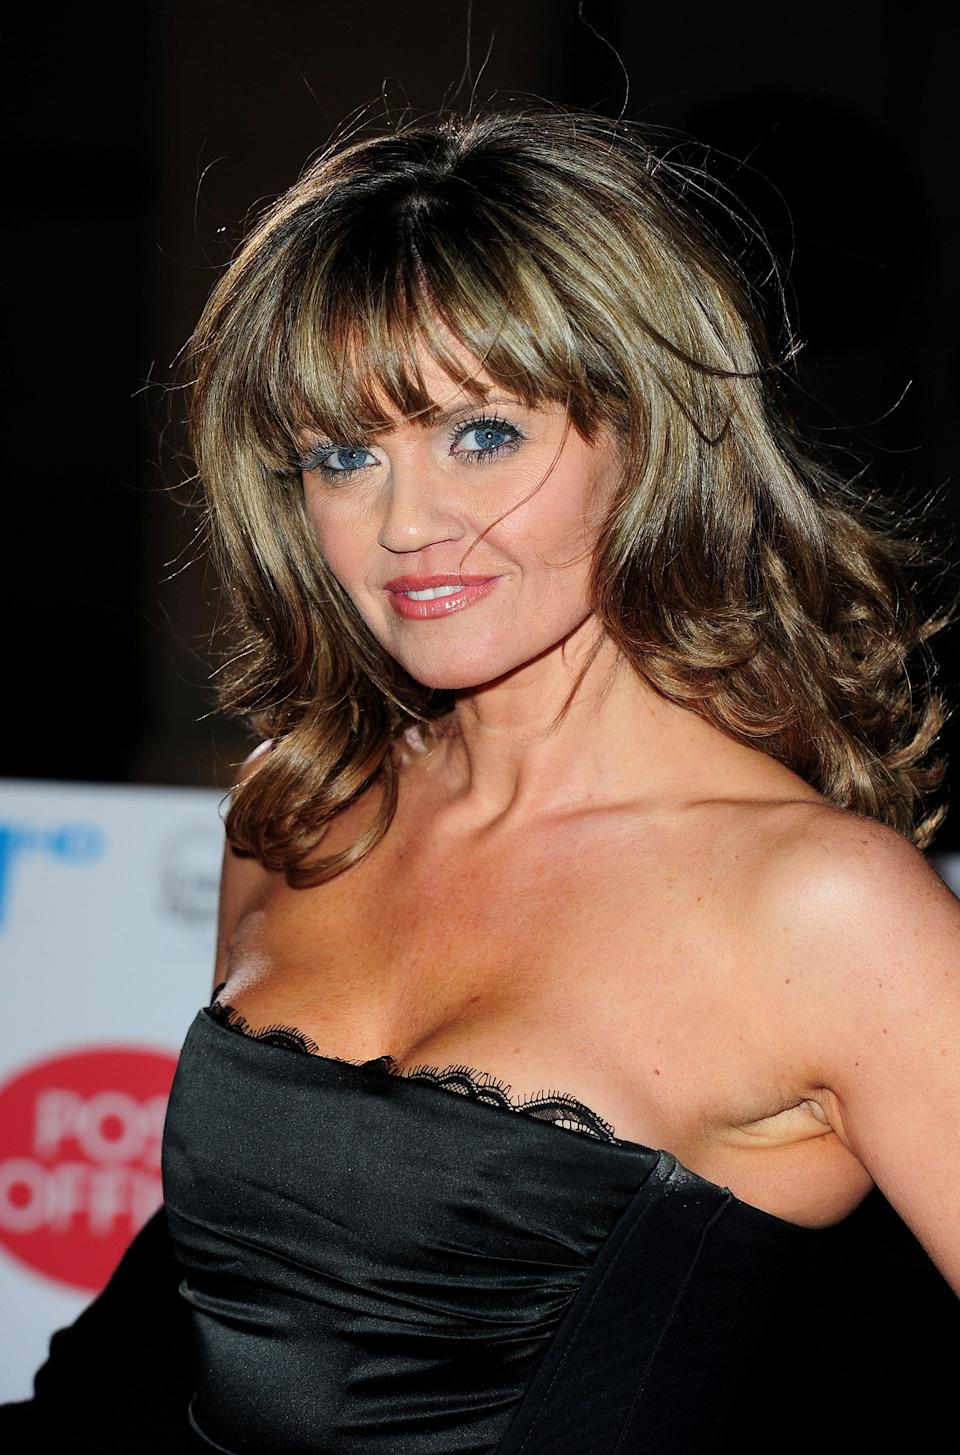 Daniella Westbrook found fame as Walford's Sam Mitchell and in 2013, she signed up for a stint on 'Hollyoaks'.